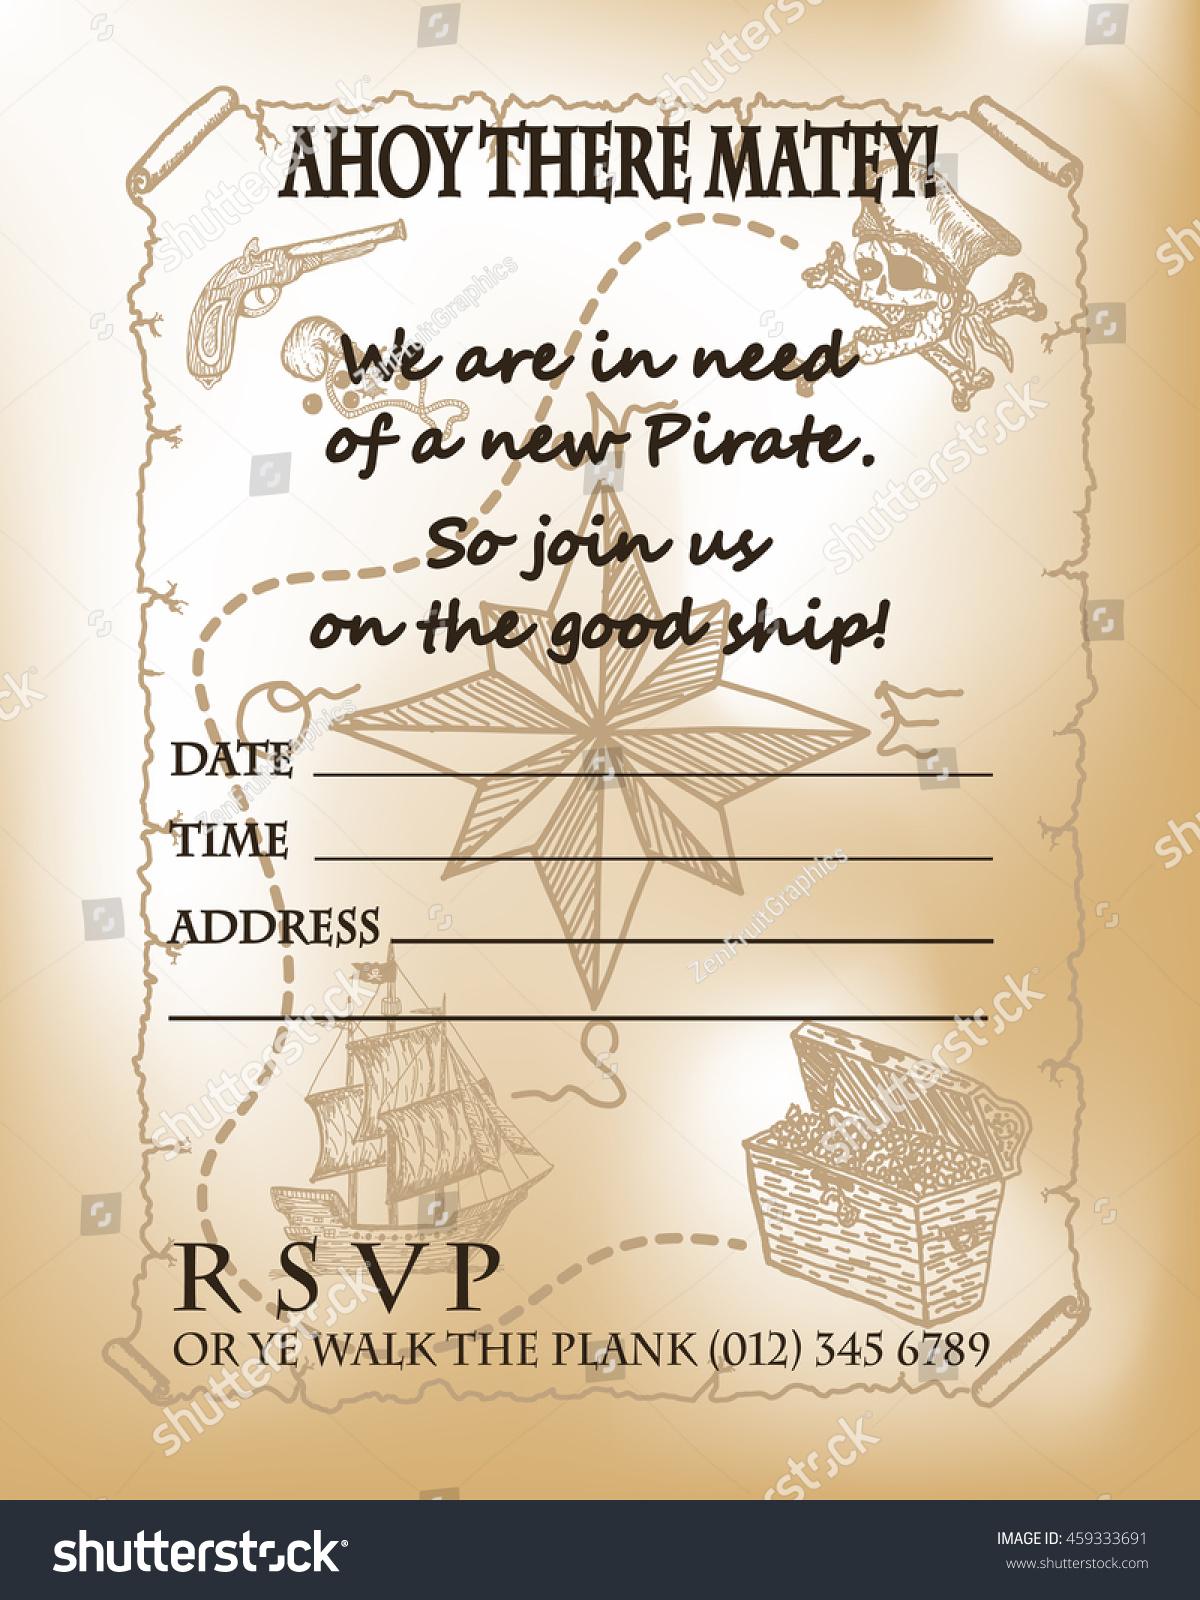 Pirate Party Invitation Card Design Pirate Stock Vector 459333691 ...